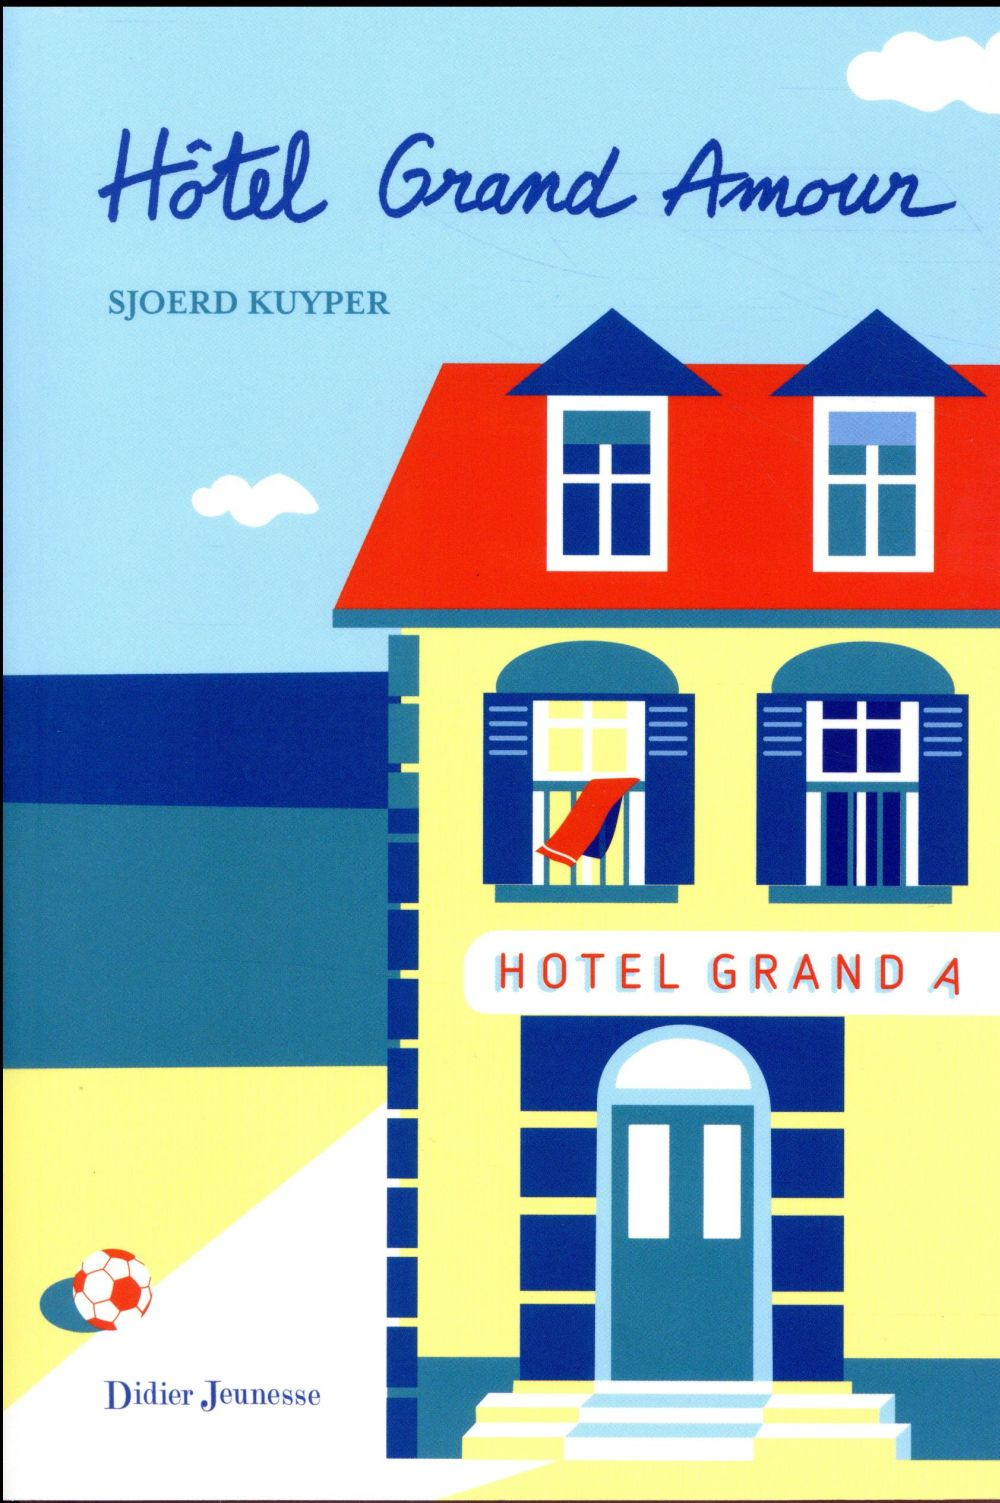 HOTEL GRAND AMOUR